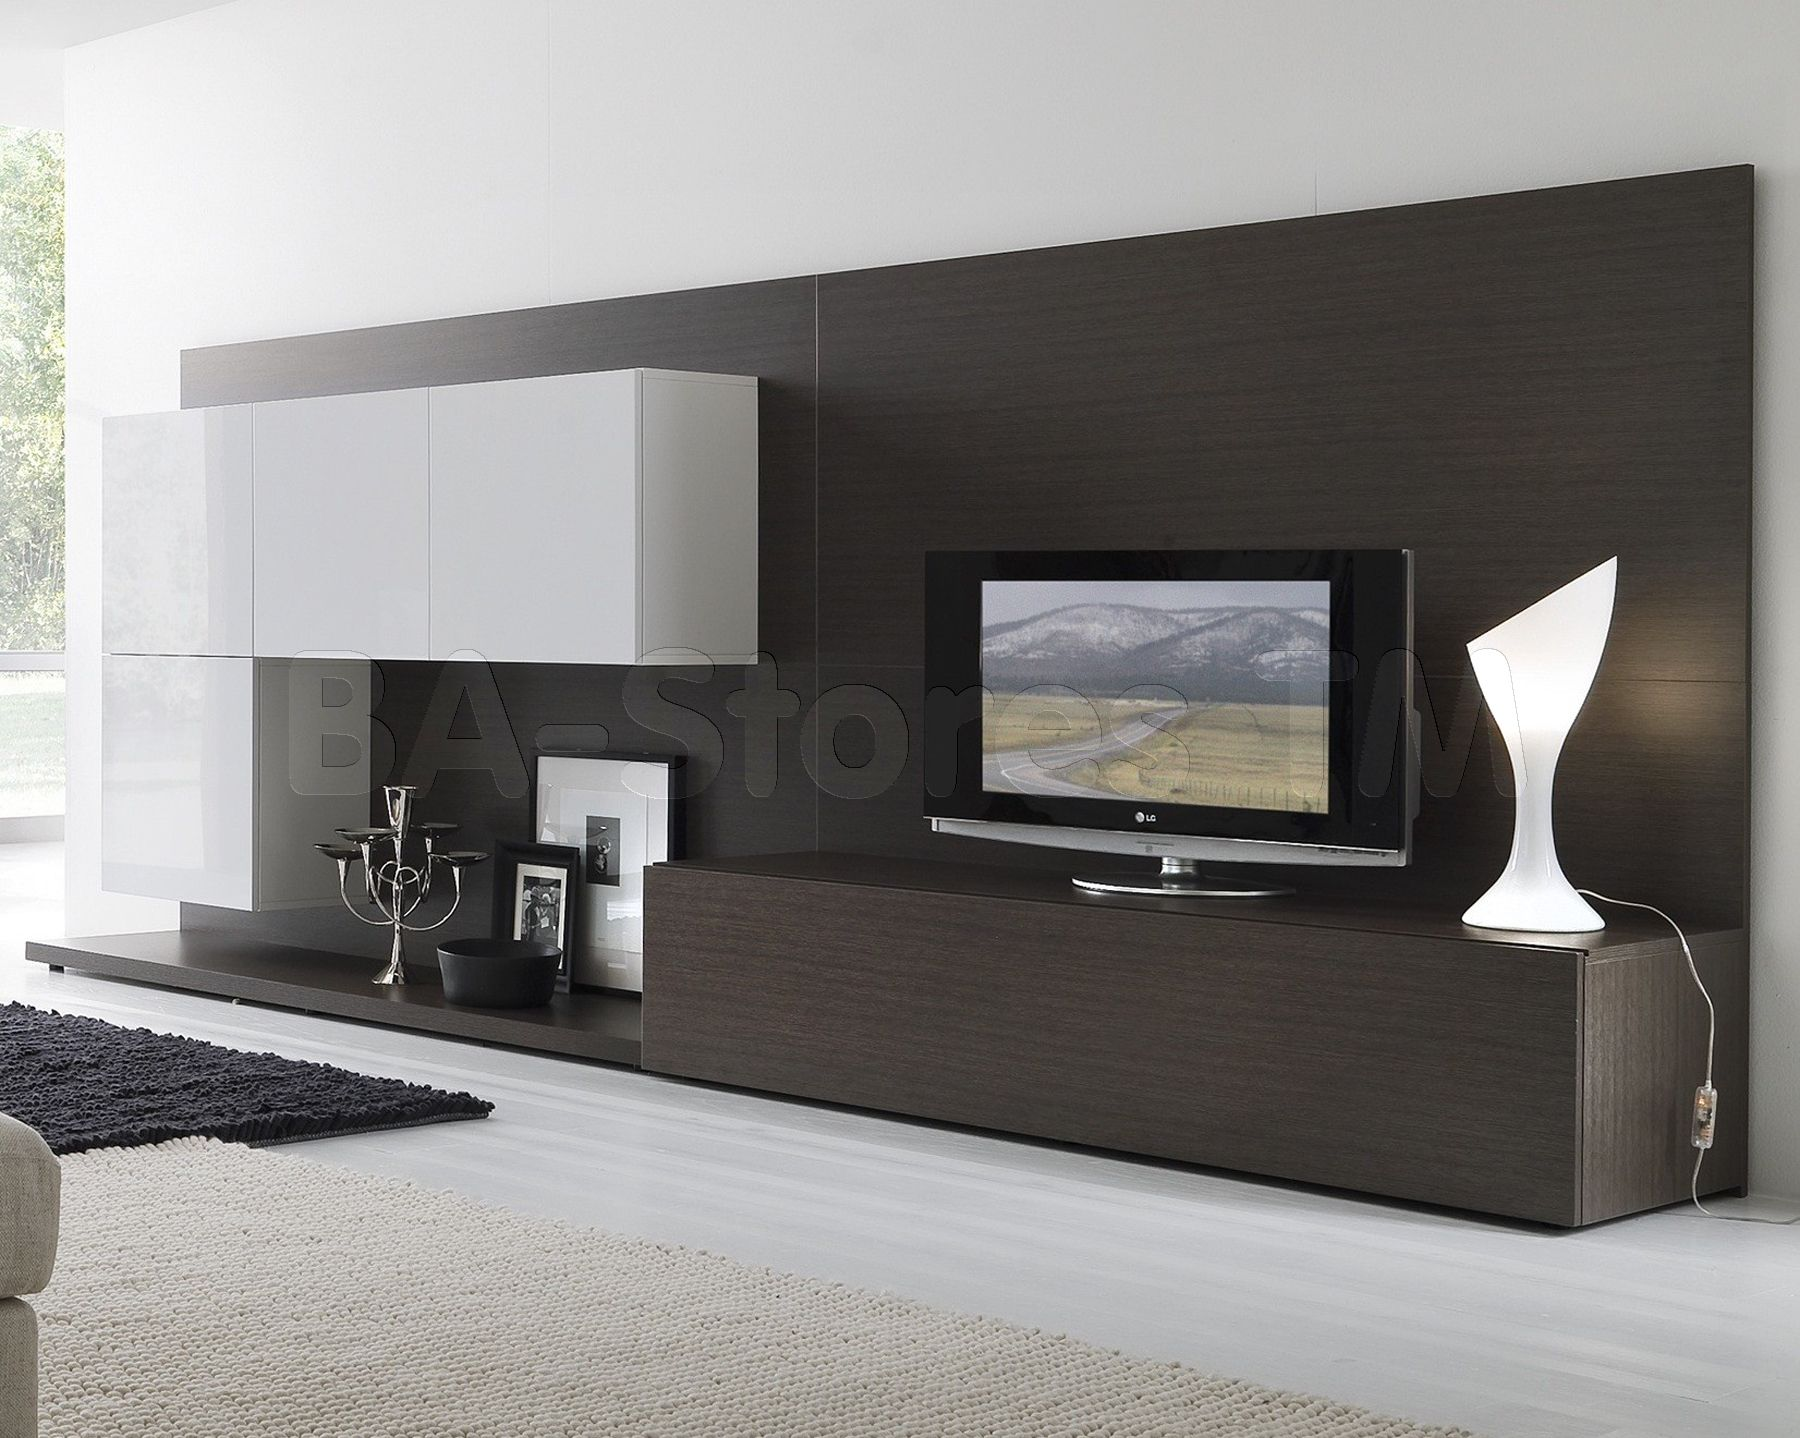 Rossetto USA Tween Wall Unit